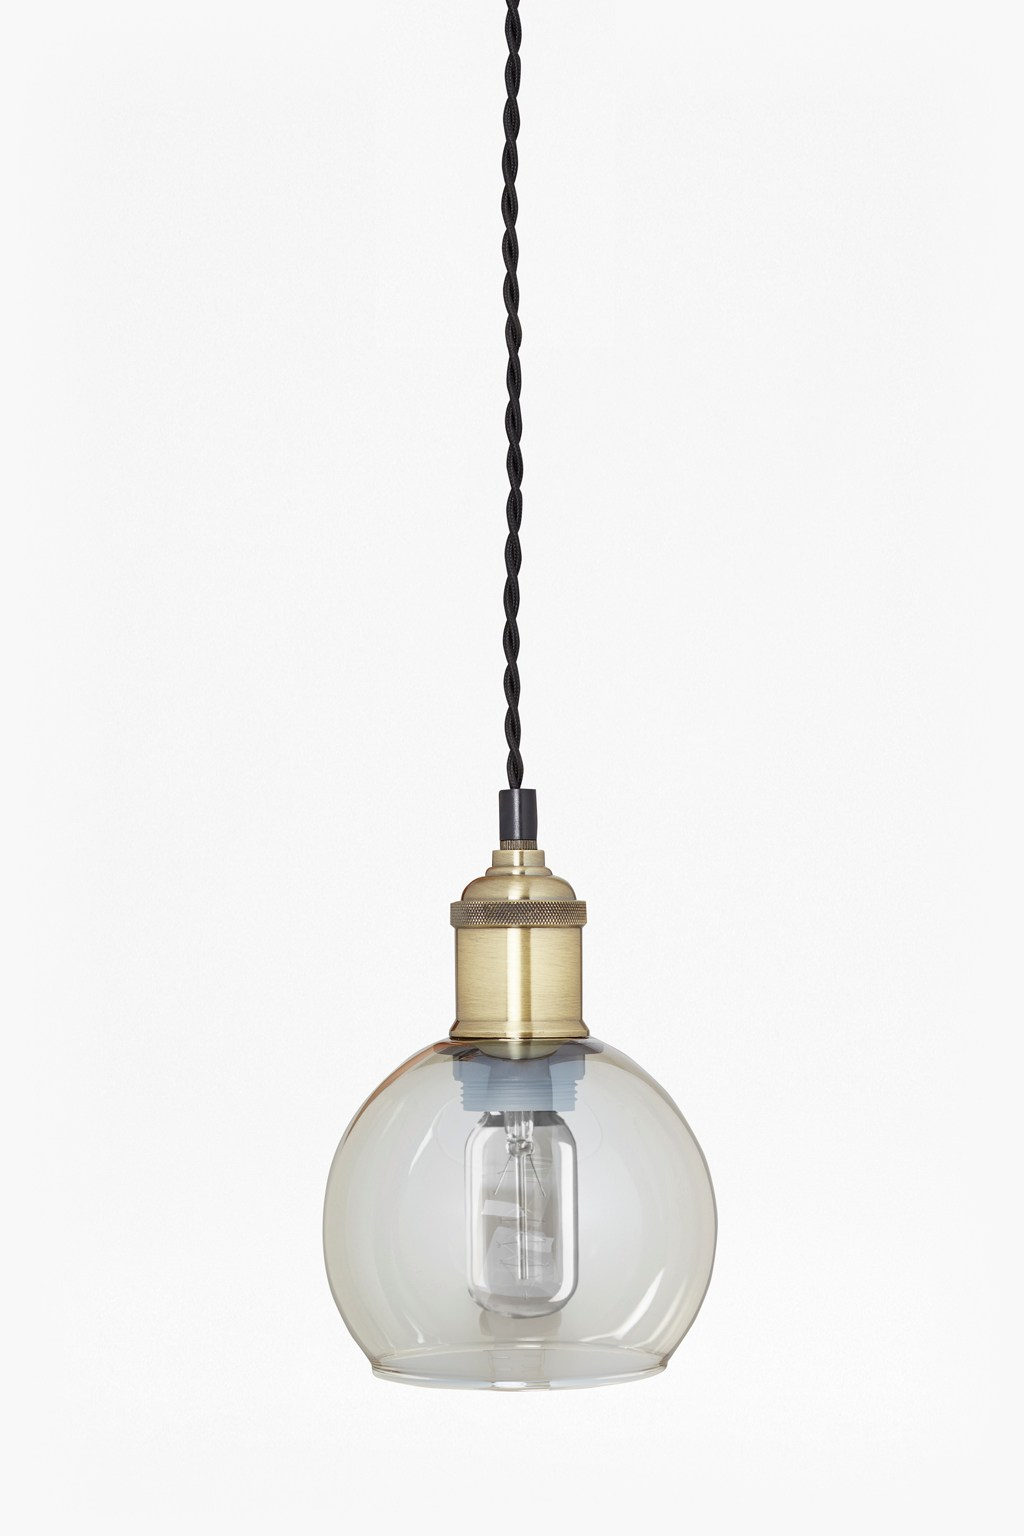 light vintage black lighting categories fixture dimmable fans ceiling in pendant style led and industrial canada depot p en modern the home lights more